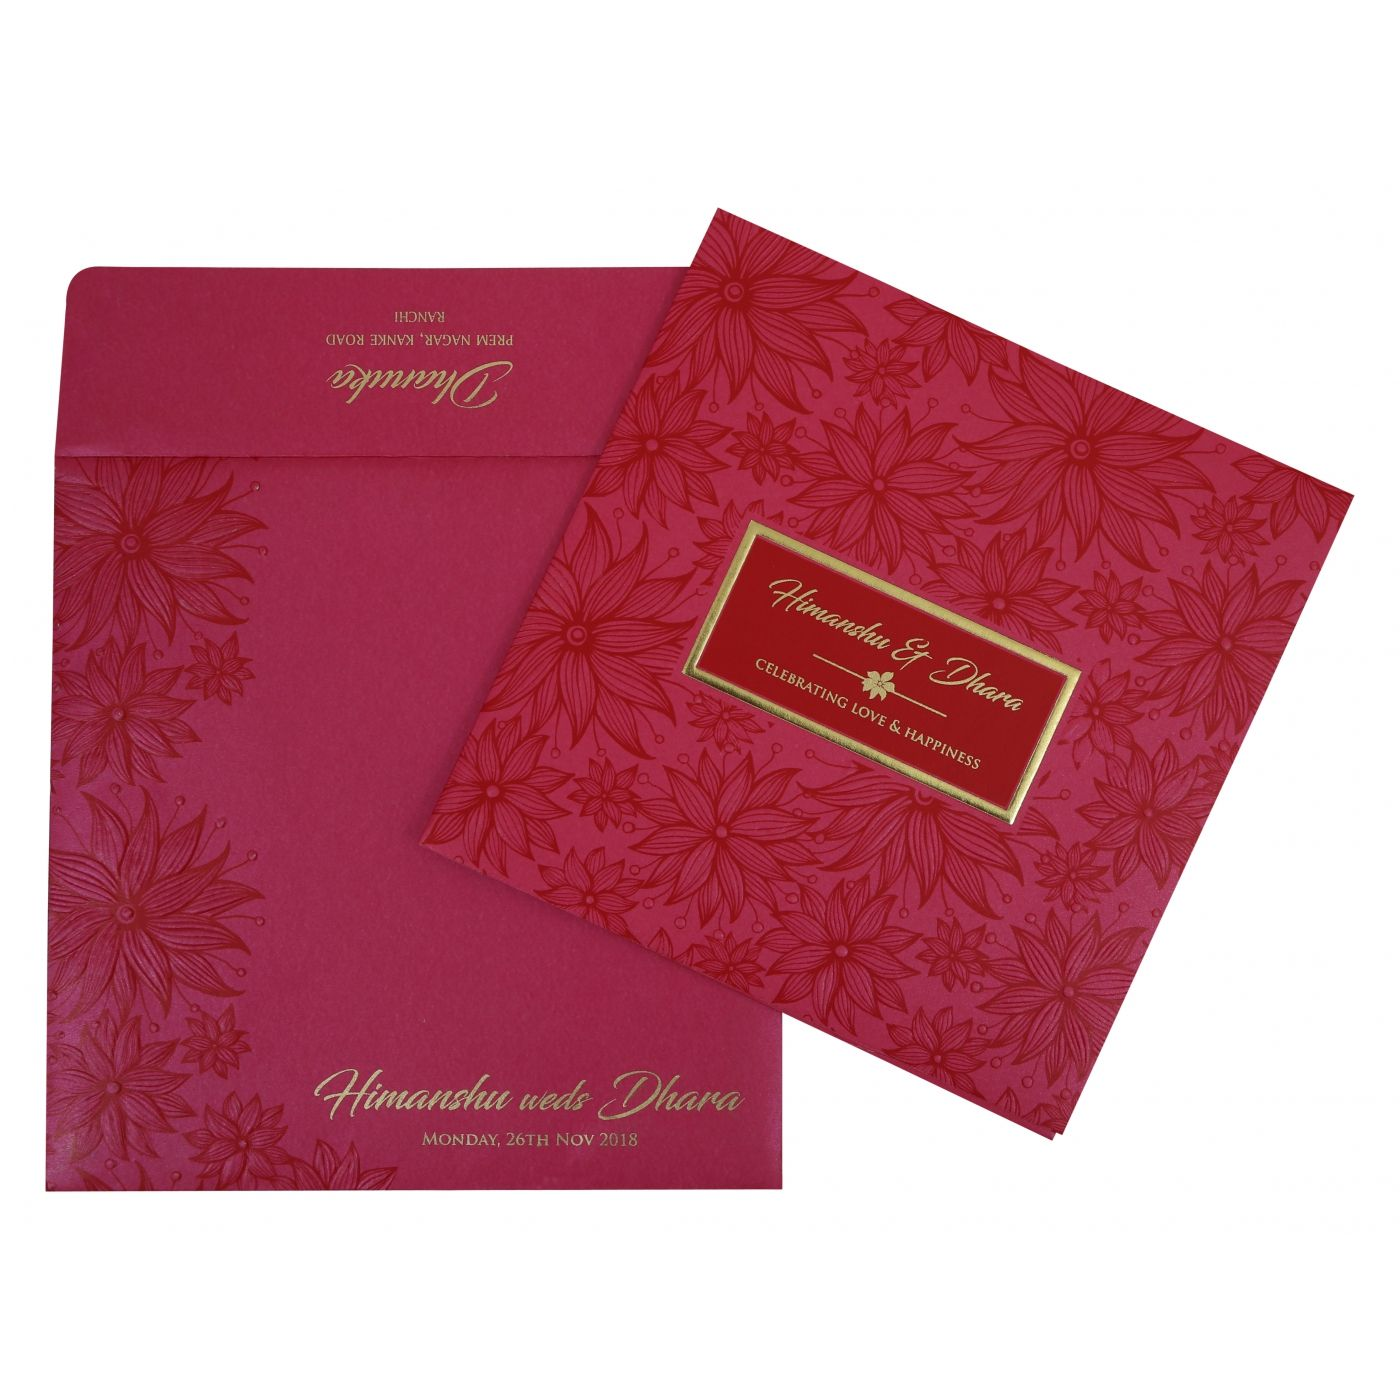 HOT PINK SHIMMERY FLORAL THEMED - FOIL STAMPED WEDDING INVITATION : CI-1783 - IndianWeddingCards